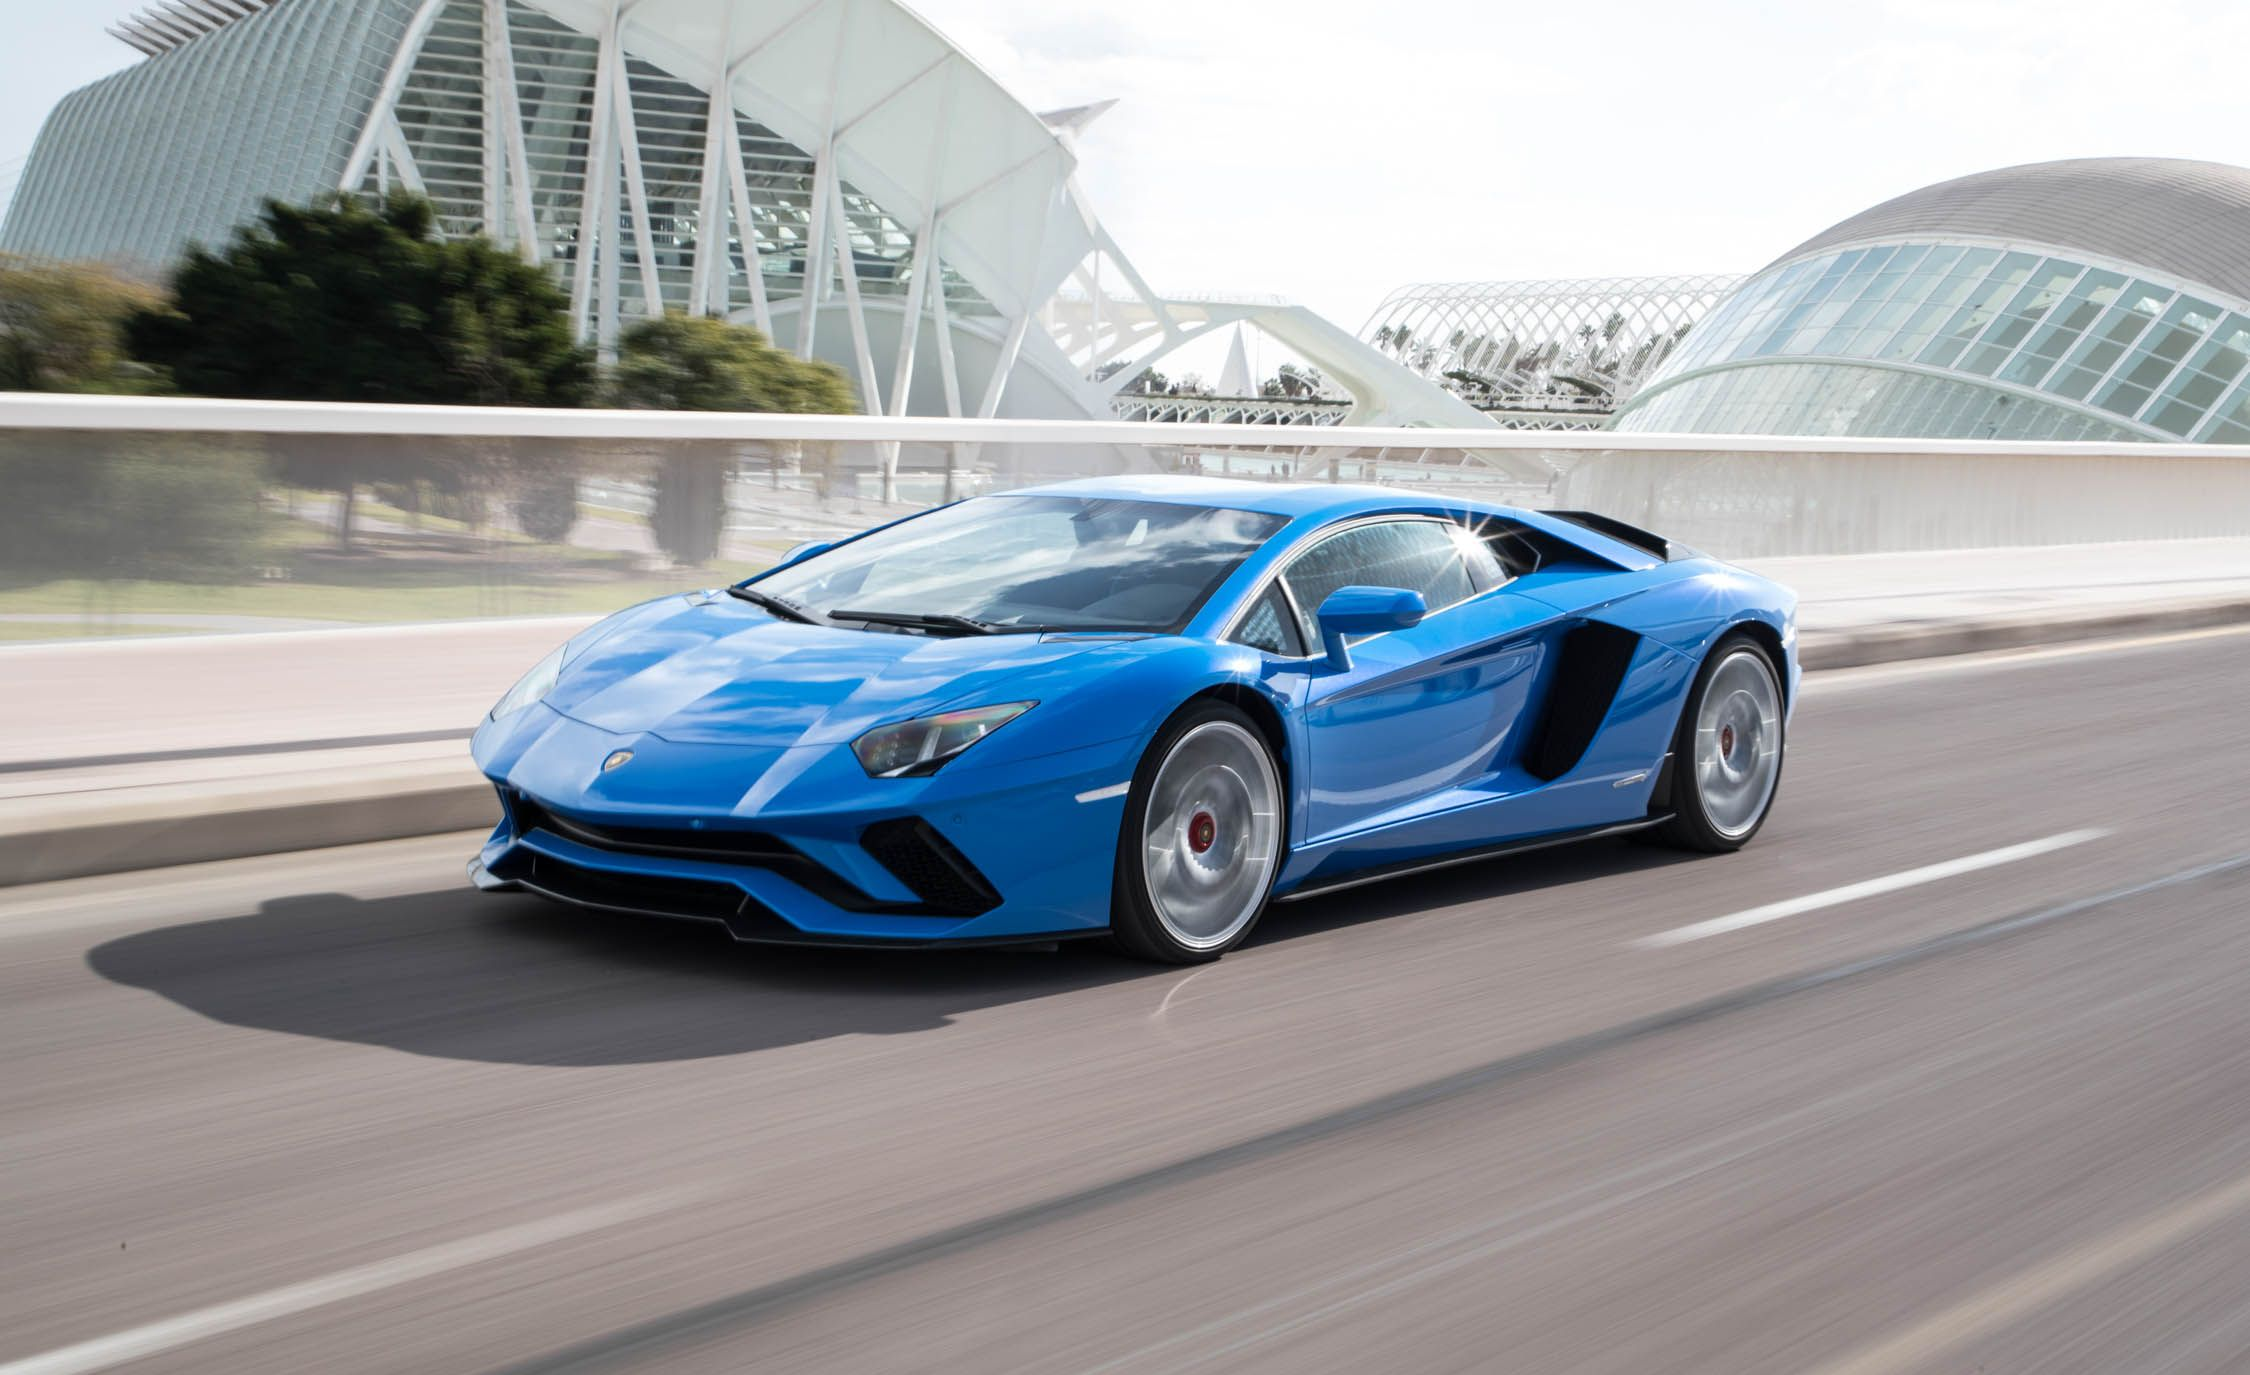 suv and specs to everything lamborghini usa need pictures prices in car you full by details magazine official know news urus lambo first